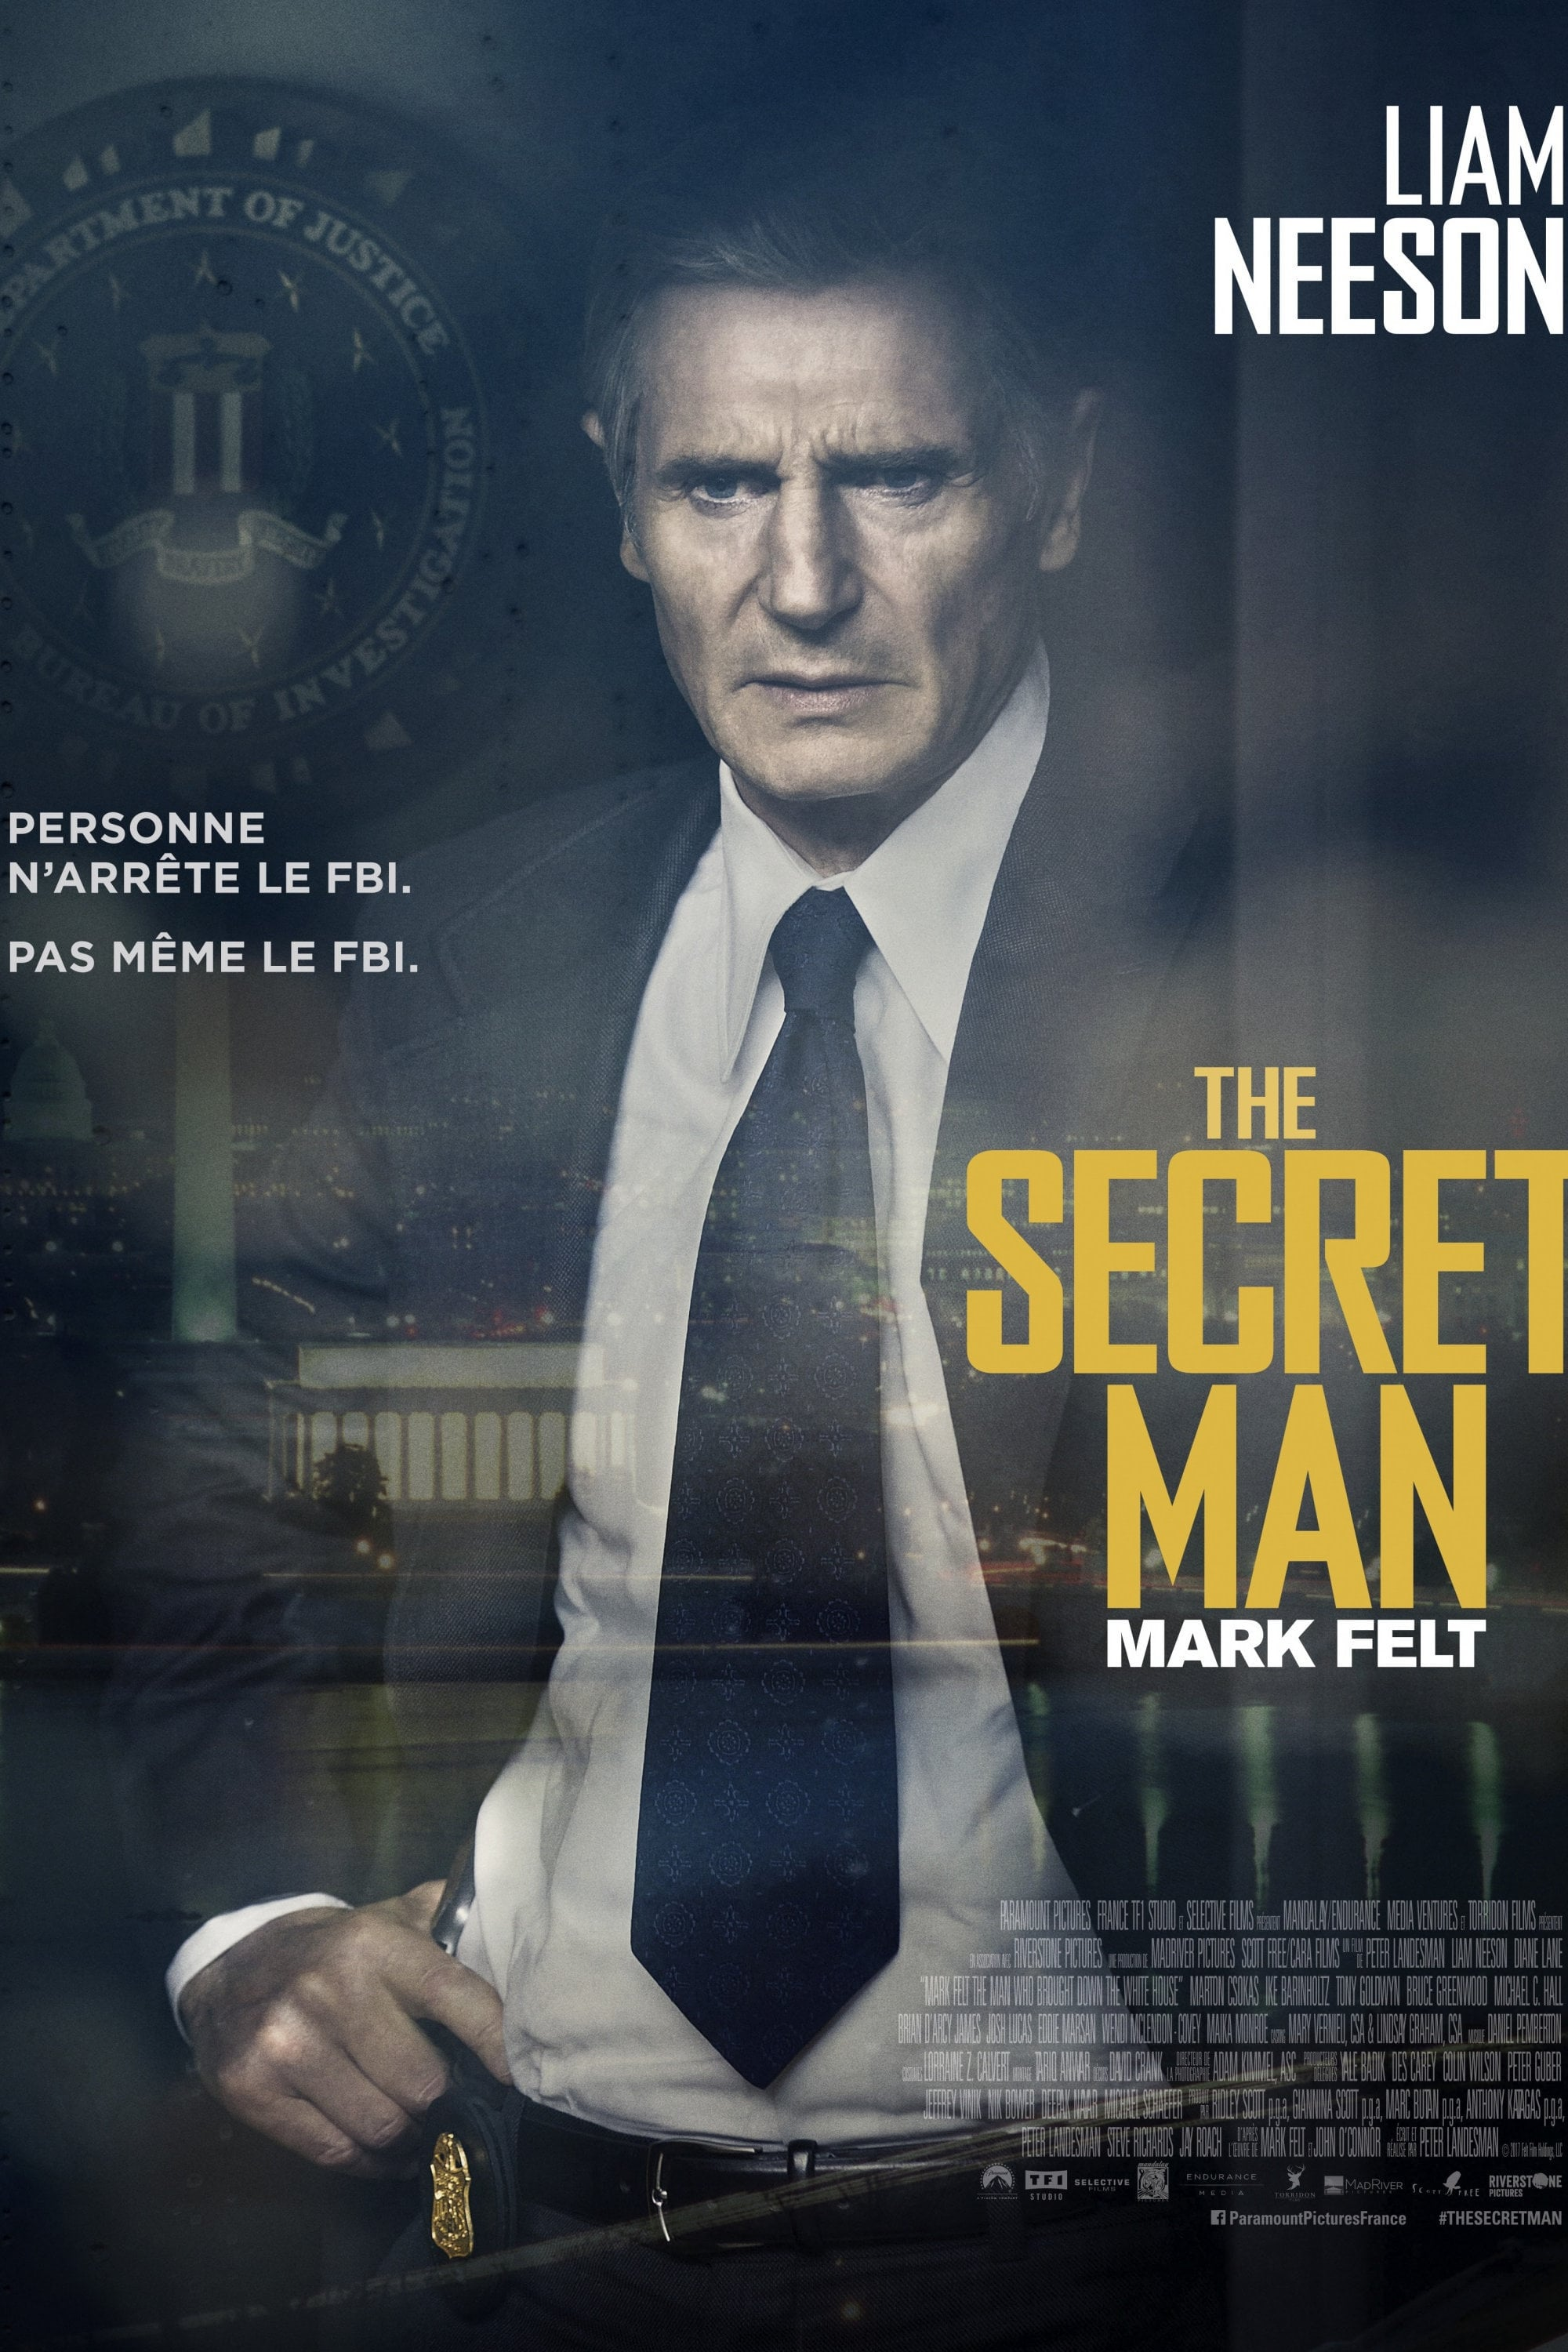 The Secret Man - Mark Felt